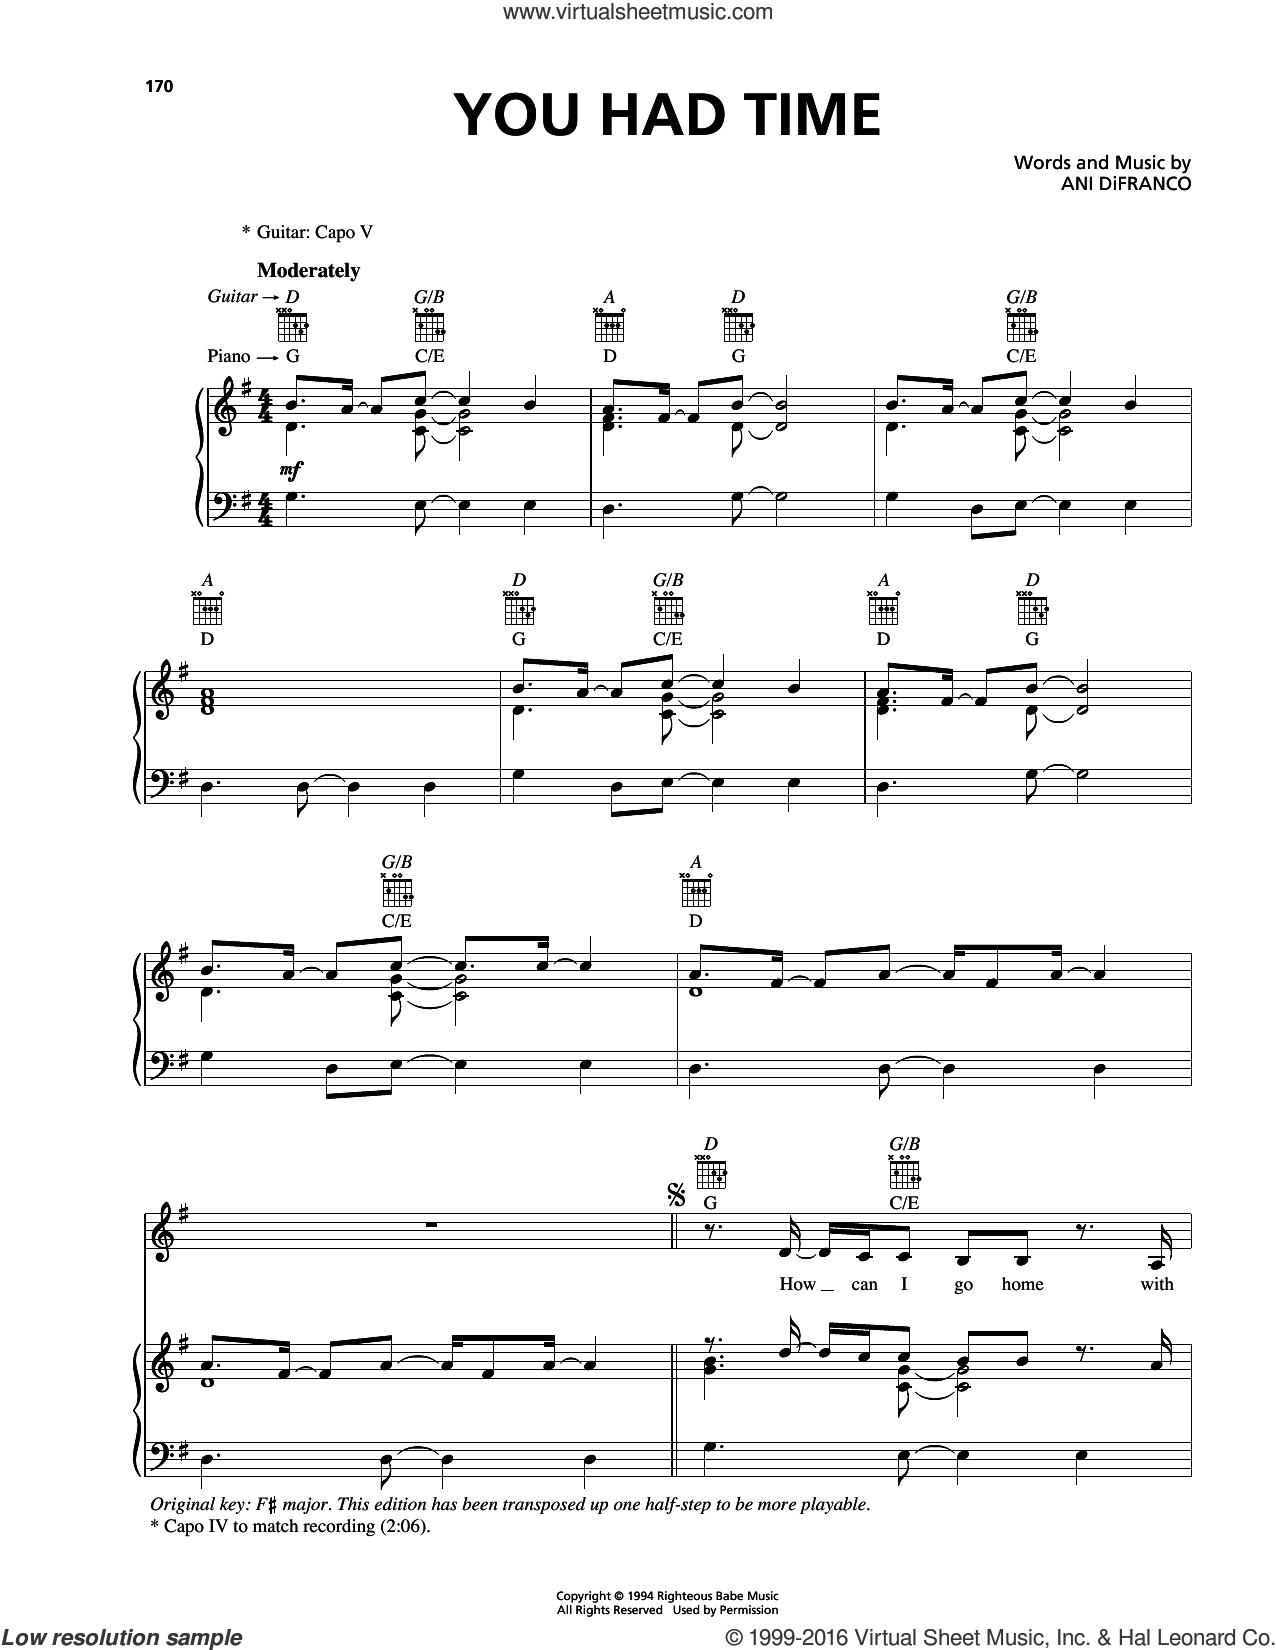 You Had Time sheet music for voice, piano or guitar by Ani DiFranco, intermediate skill level